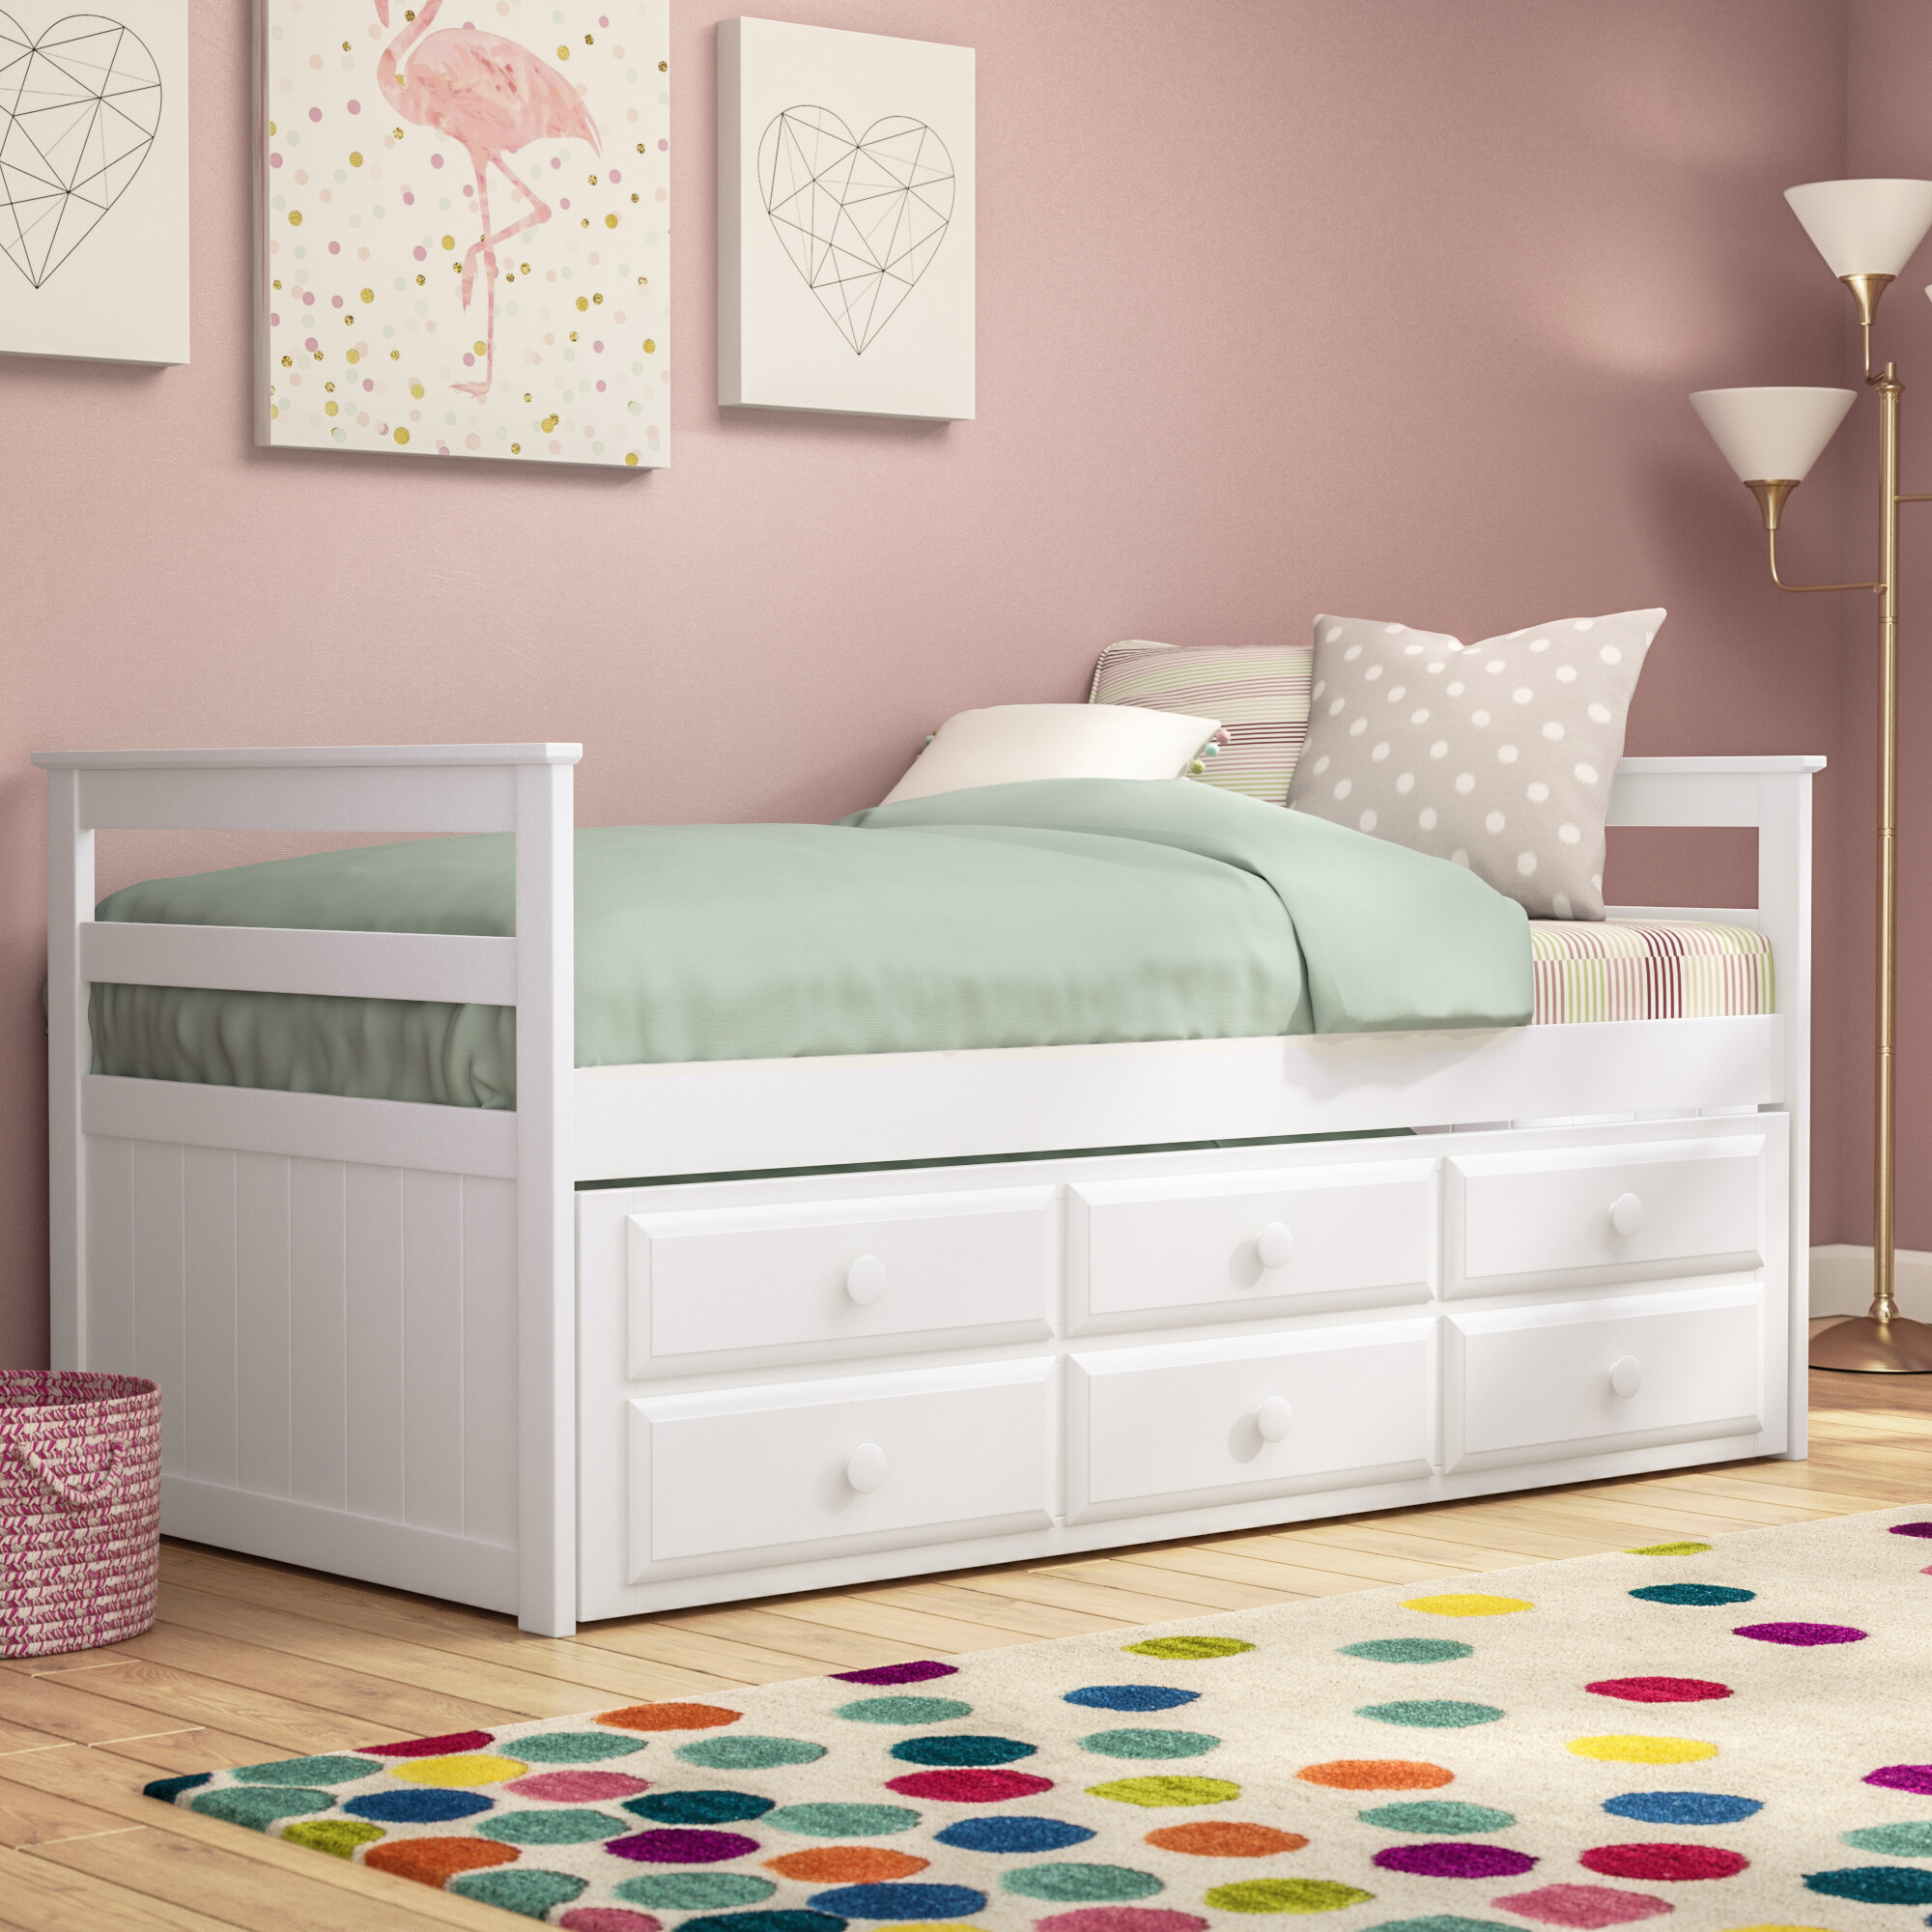 Trundle Bed.Kari Twin Bed With Trundle And Drawers